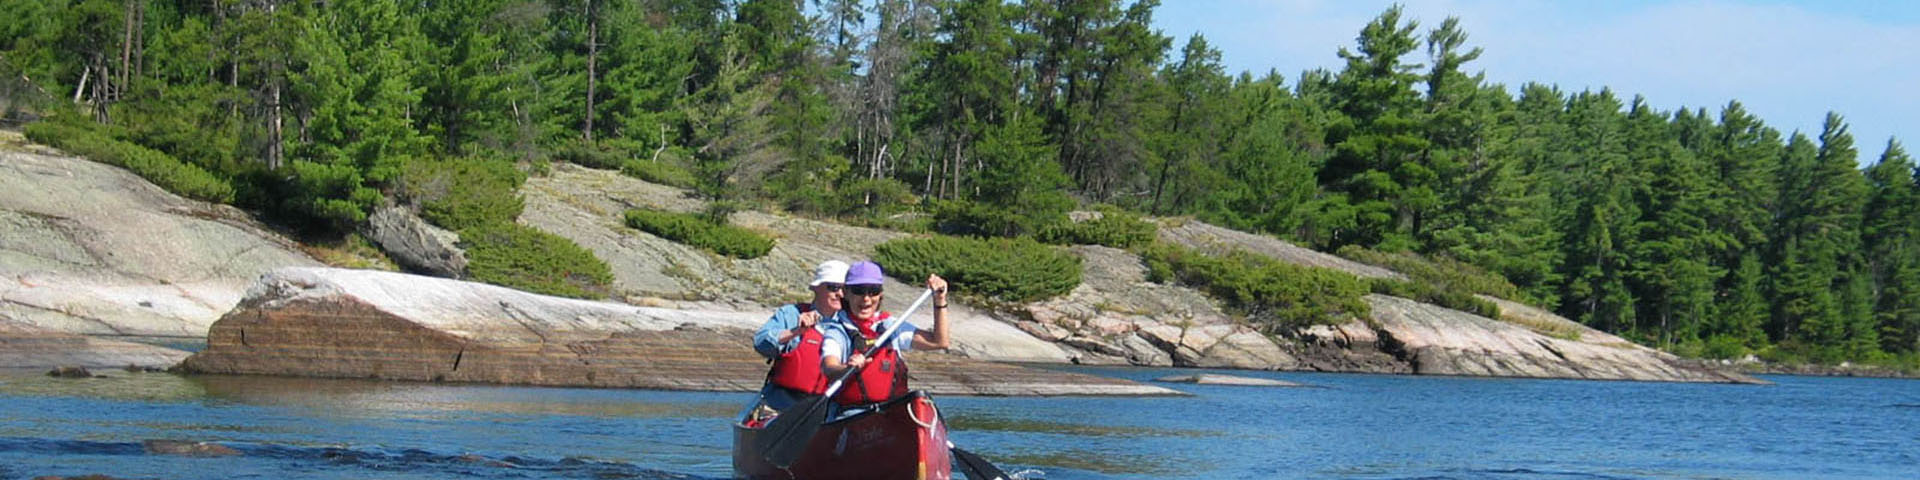 French River Canoe Trip by Black Feather - Image 156